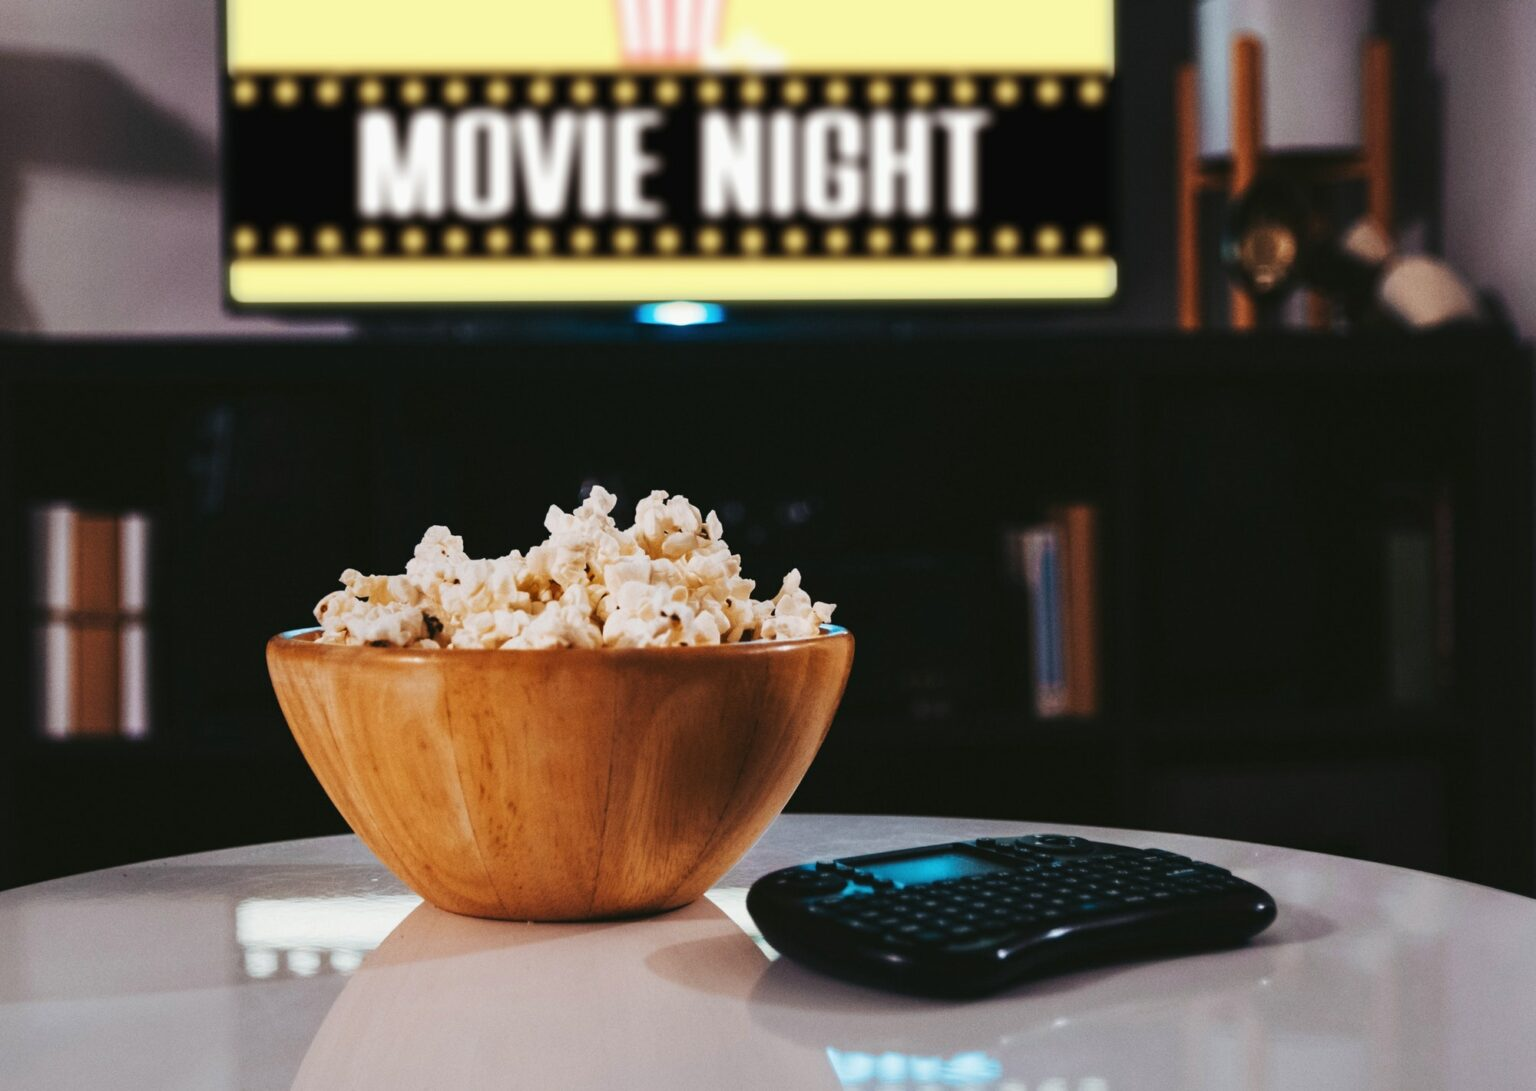 Bowl of popcorn, tv in background, movie night, home, lifestyle, remote, watching tv.